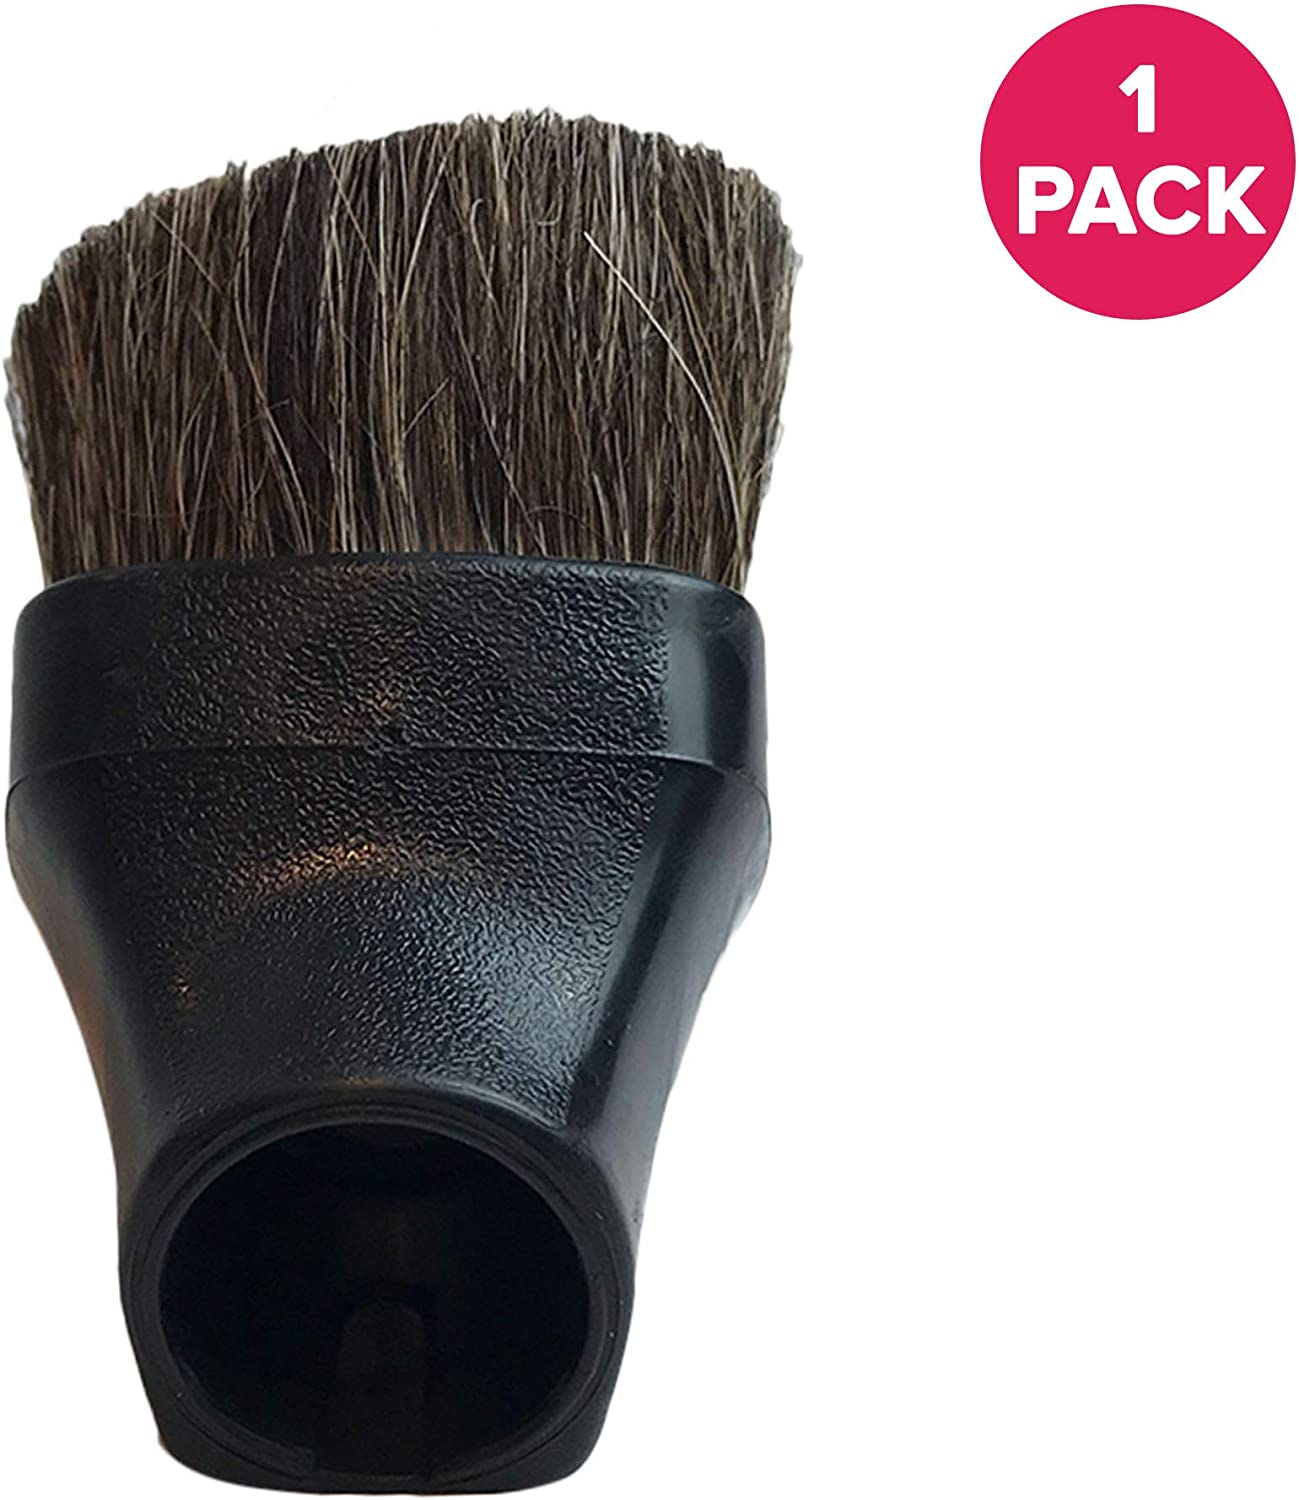 Think Crucial Replacement for Rainbow Dusting Brush Fits D2, D3, D4, SE, E & E2 Series